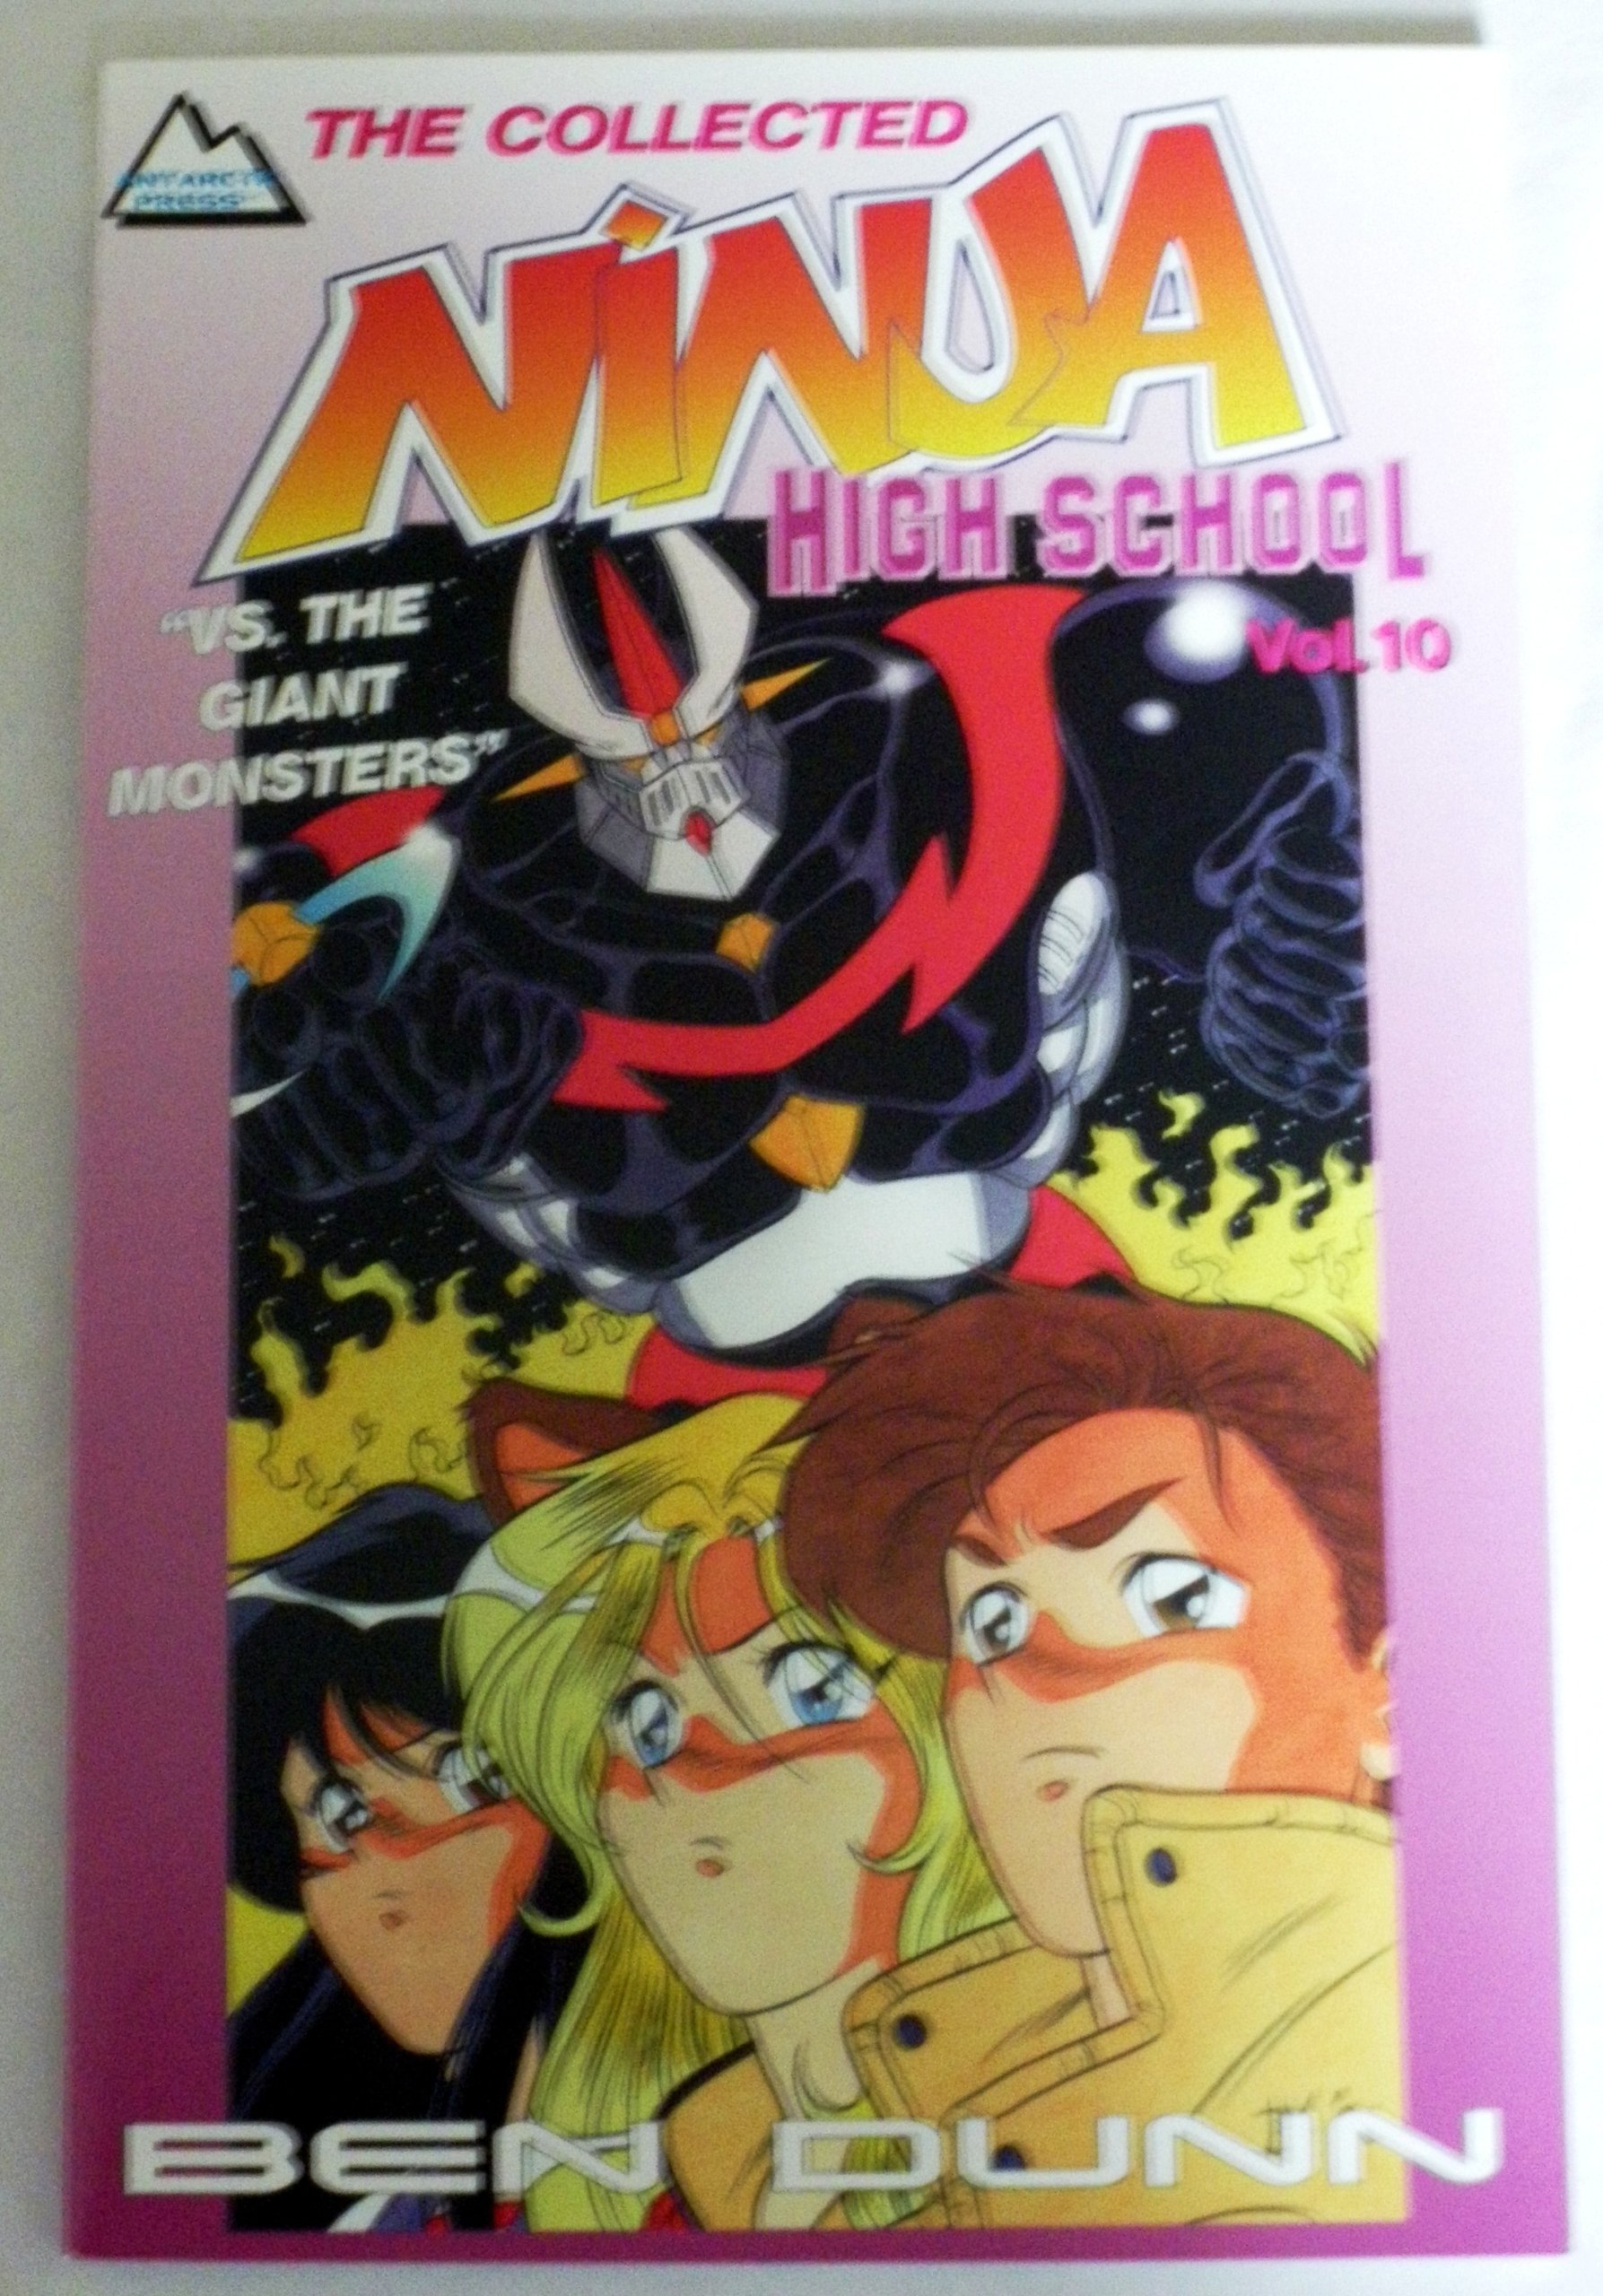 The Collected Ninja High School Vol 10 Vs. The Giant ...